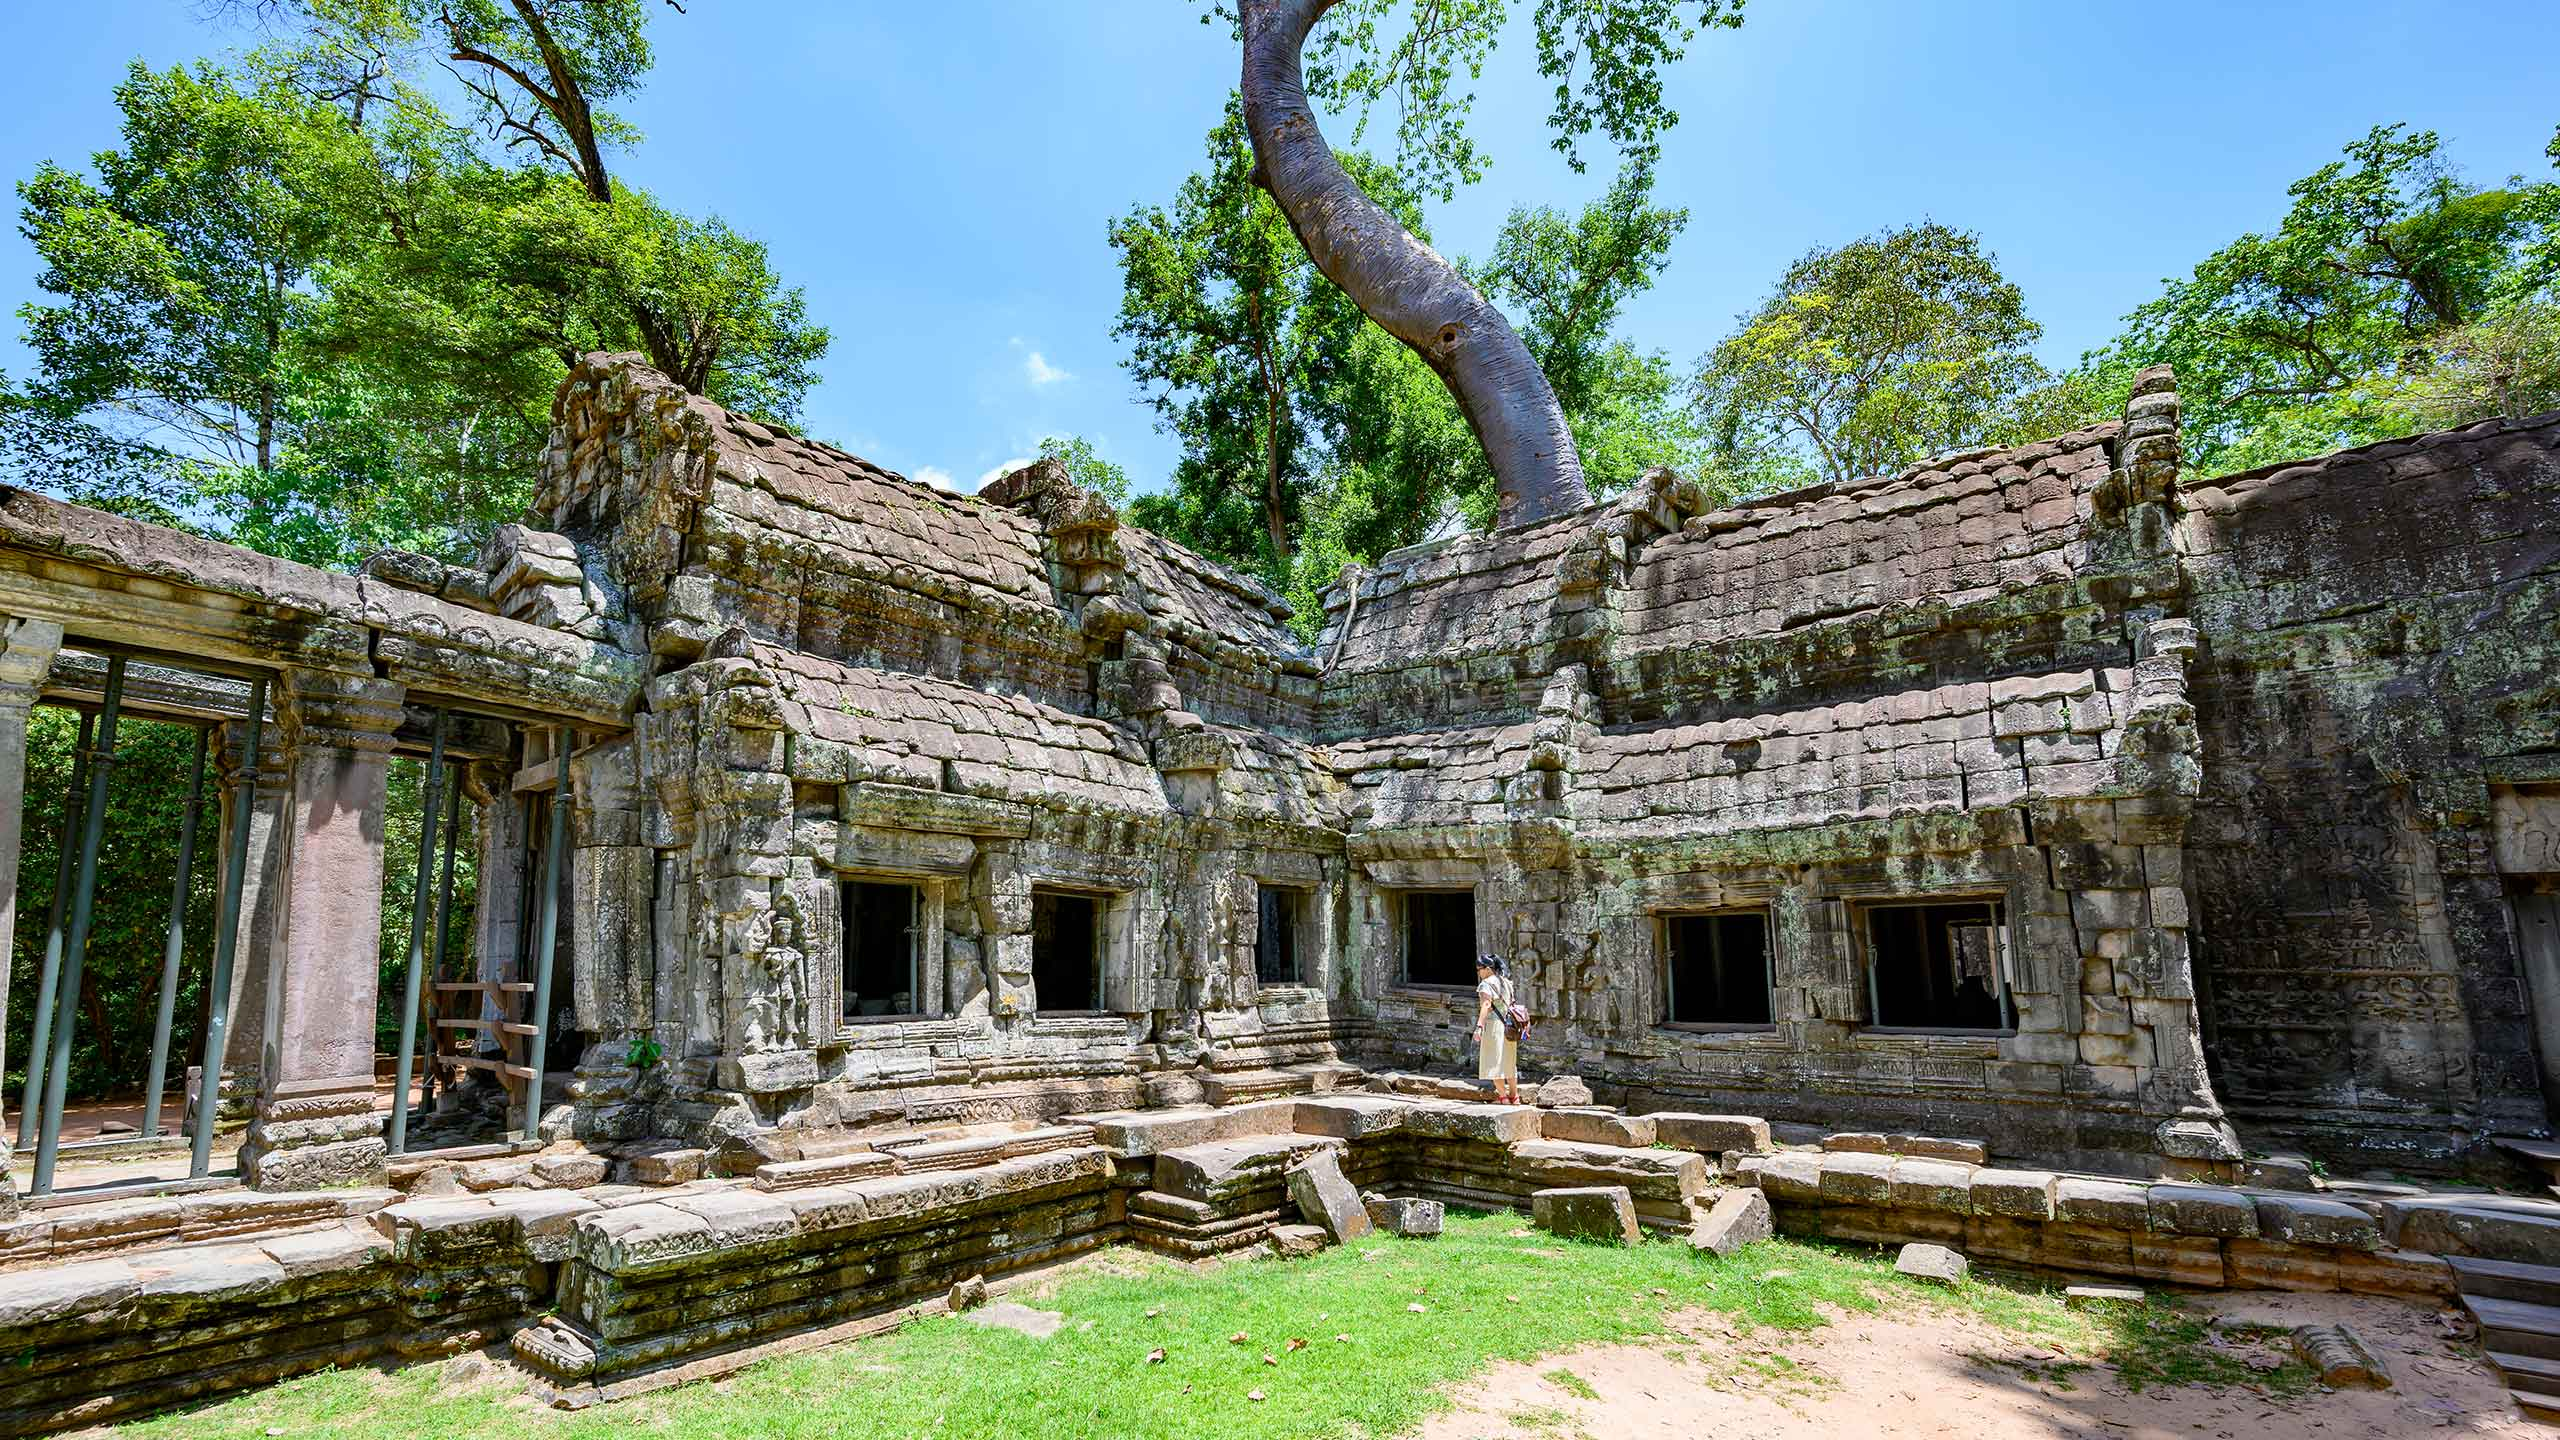 Ta Prohm temple at Angkor Wat, Cambodia